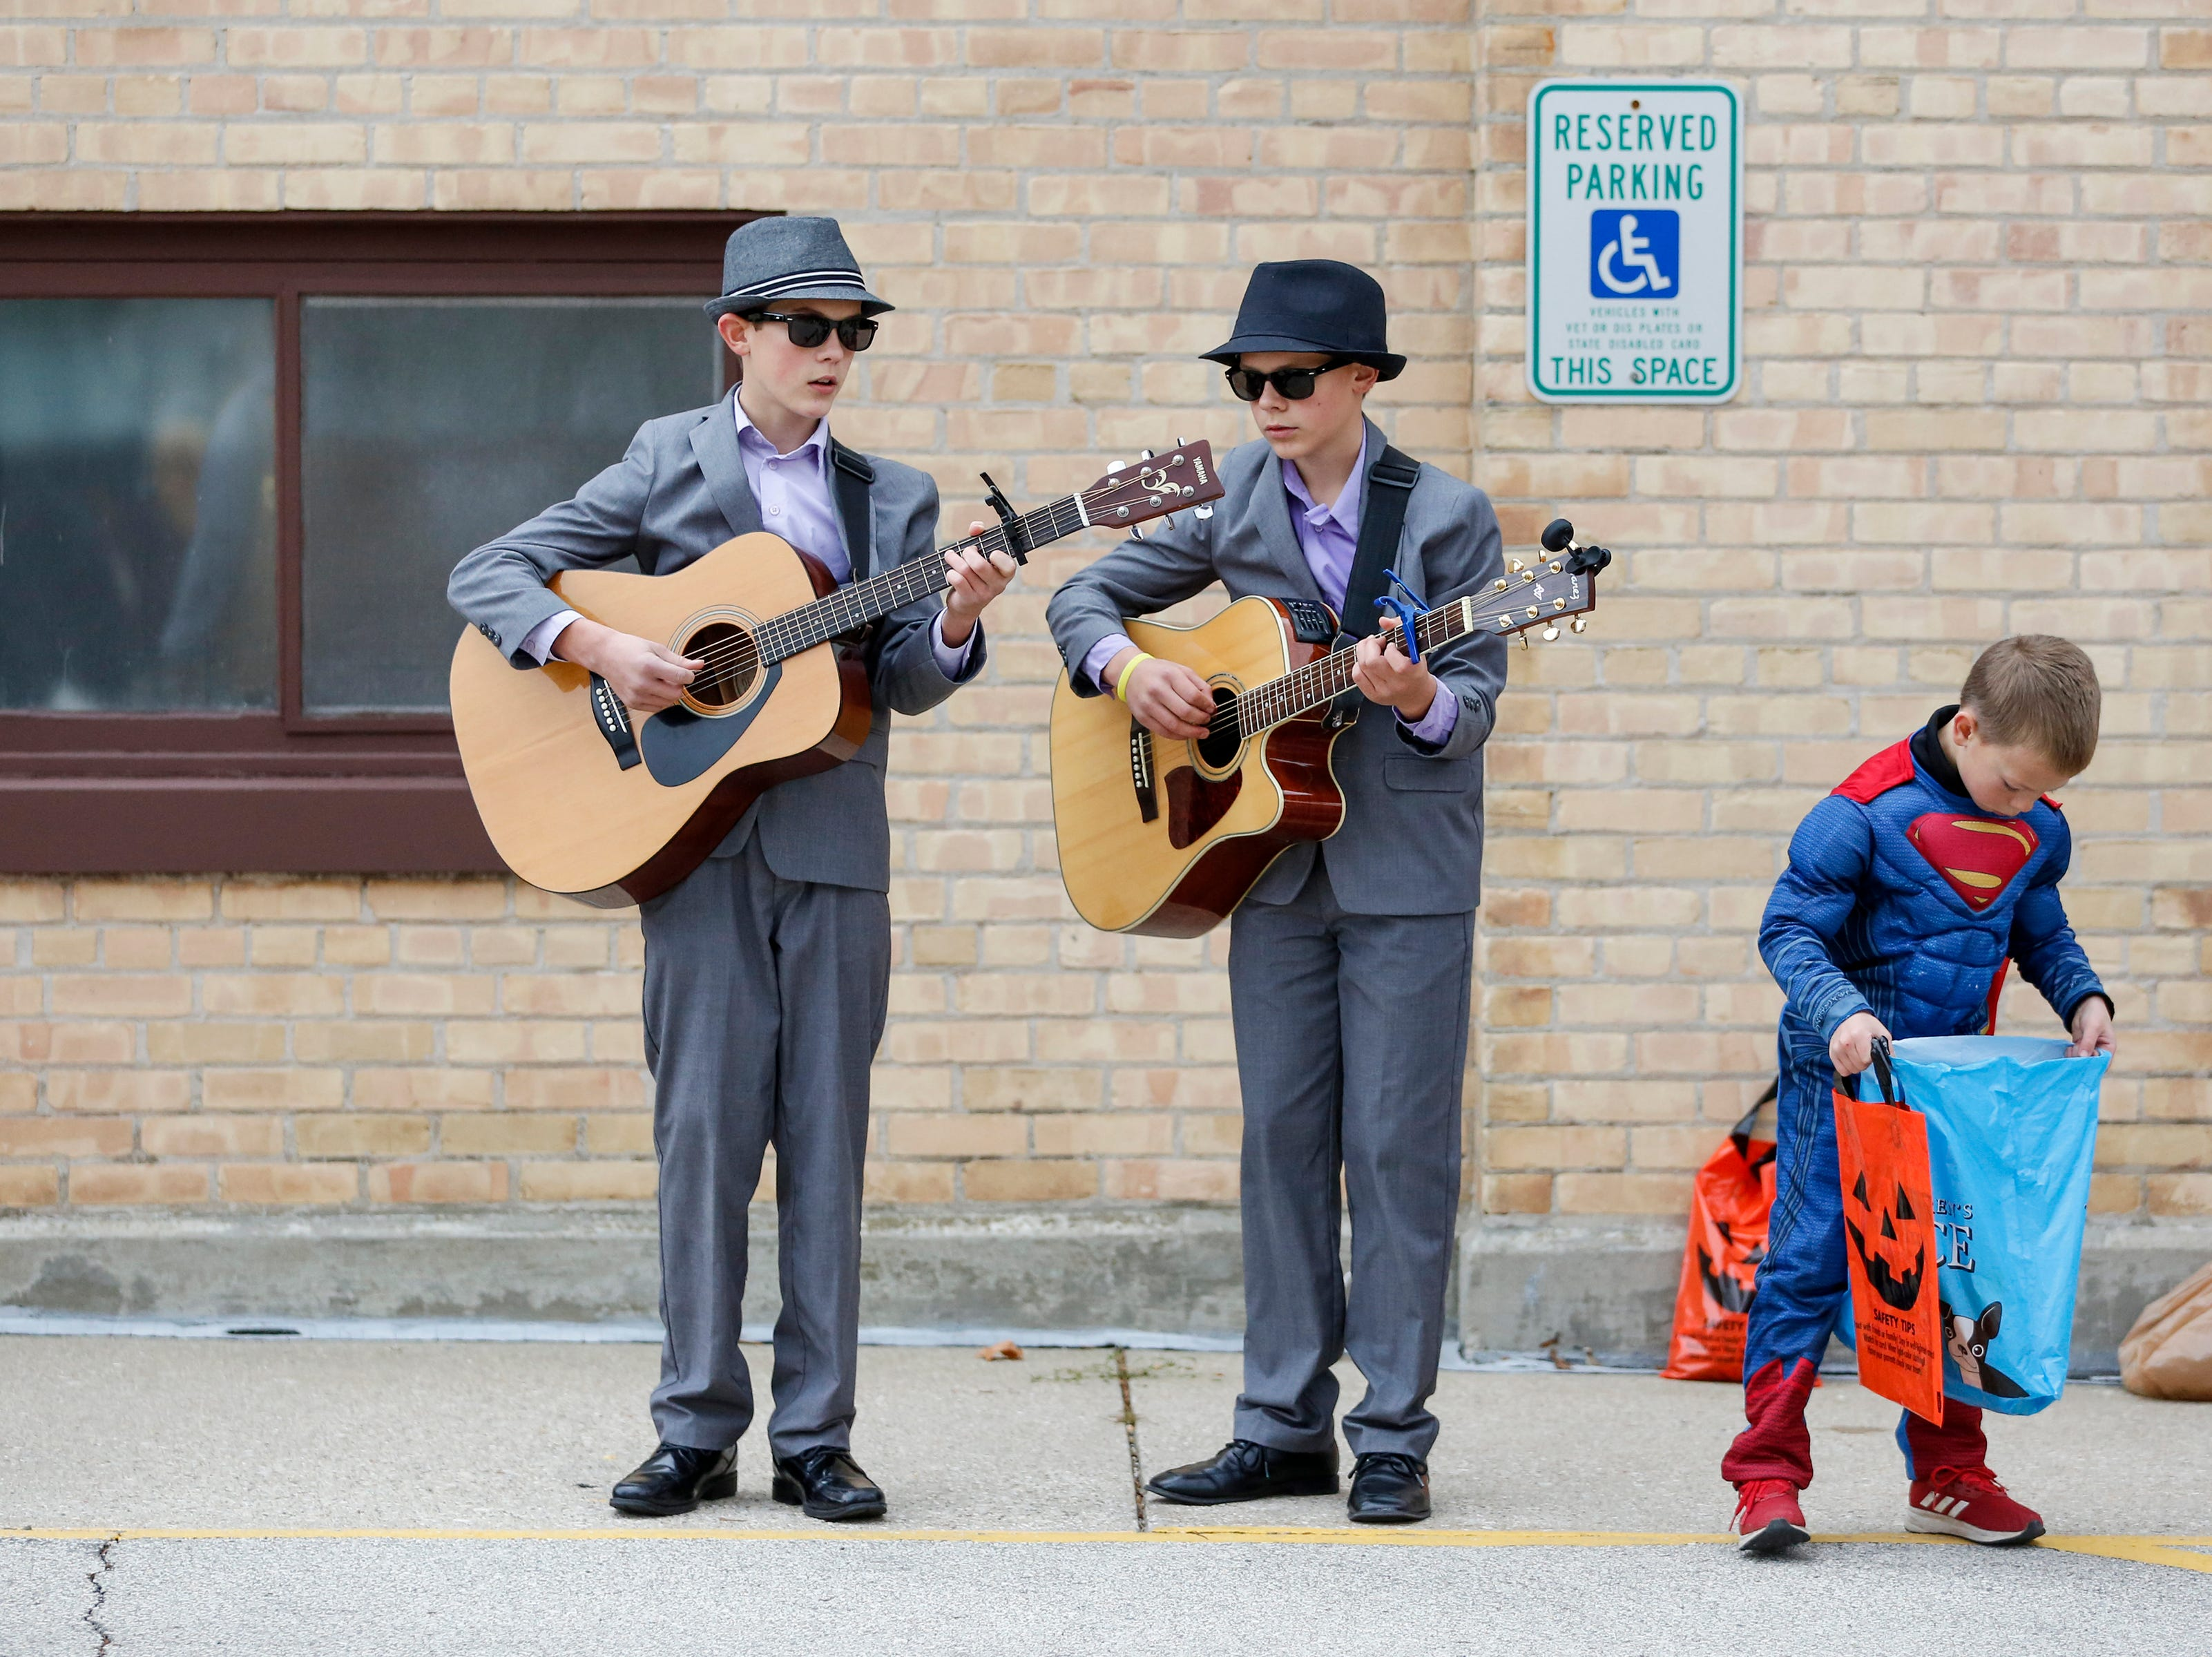 Adam, 13, and Ben, 11, Backus play guitars dressed as the Blues Brothers during the Downtown Trick or Treat event Saturday, October 27, 2018, in Two Rivers, Wis. Joshua Clark/USA TODAY NETWORK-Wisconsin